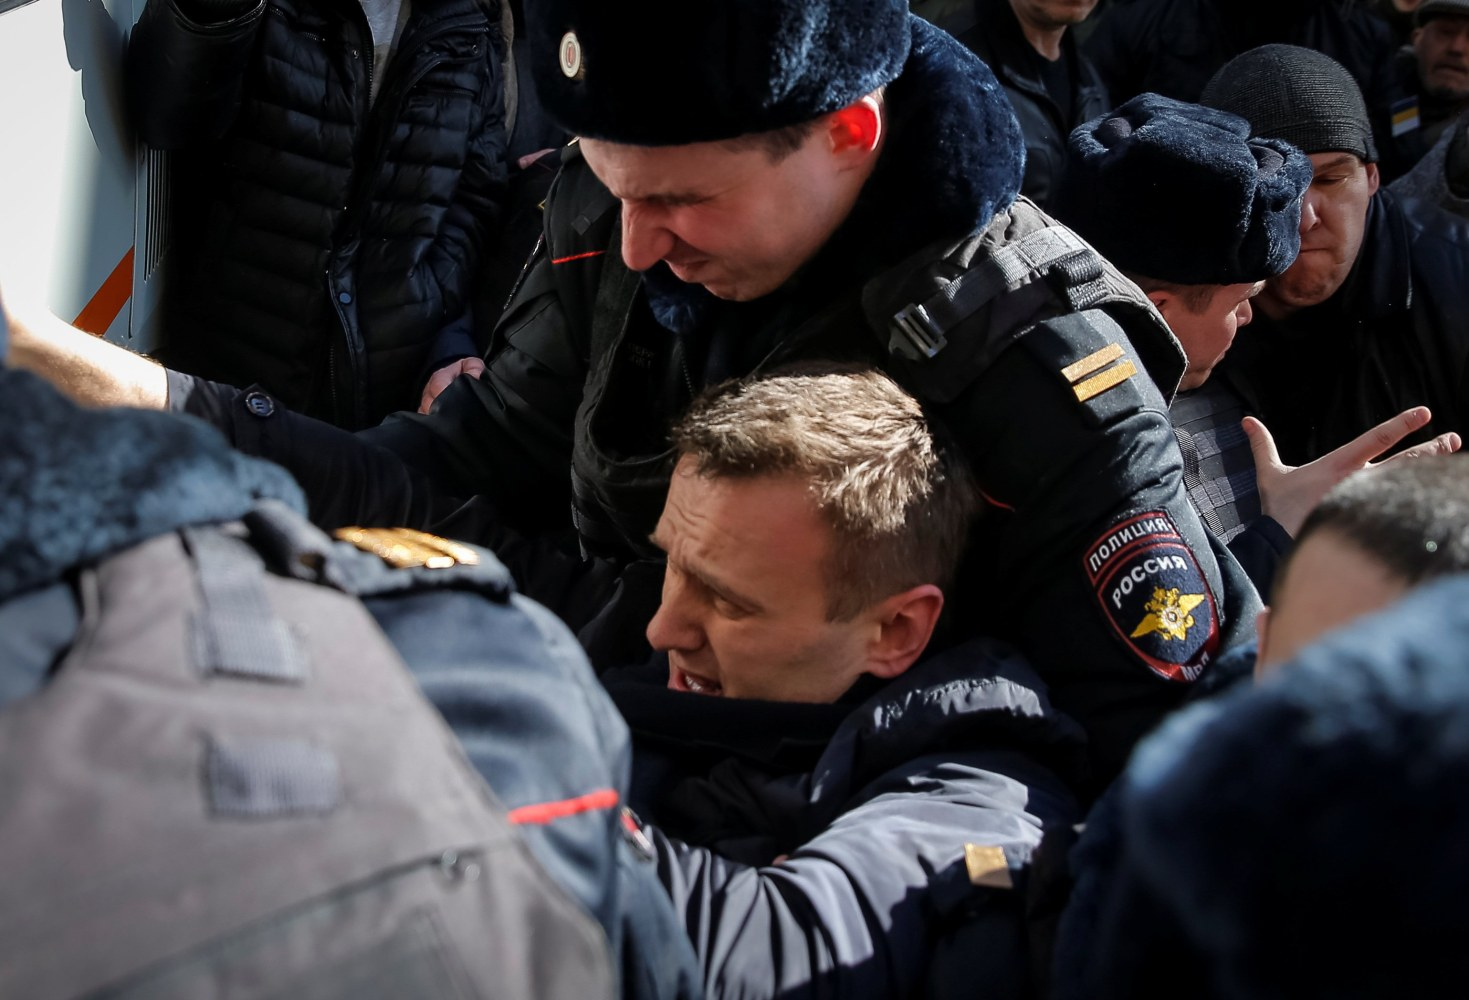 USA condemns arrest of Russian protesters in Moscow